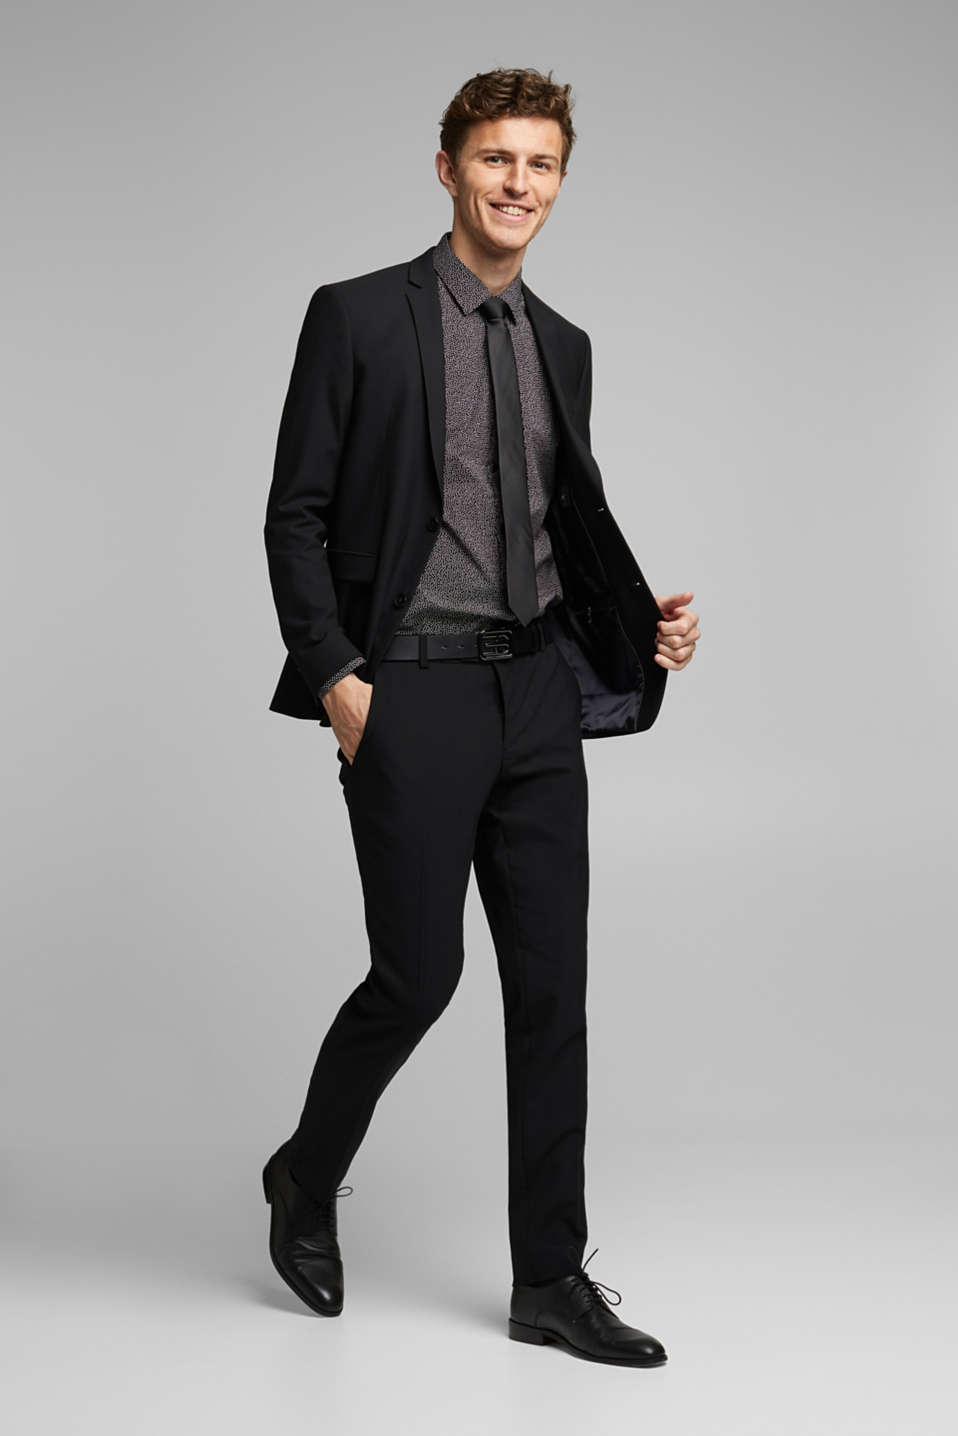 ACTIVE SUIT tailored jacket, wool blend, BLACK, detail image number 1